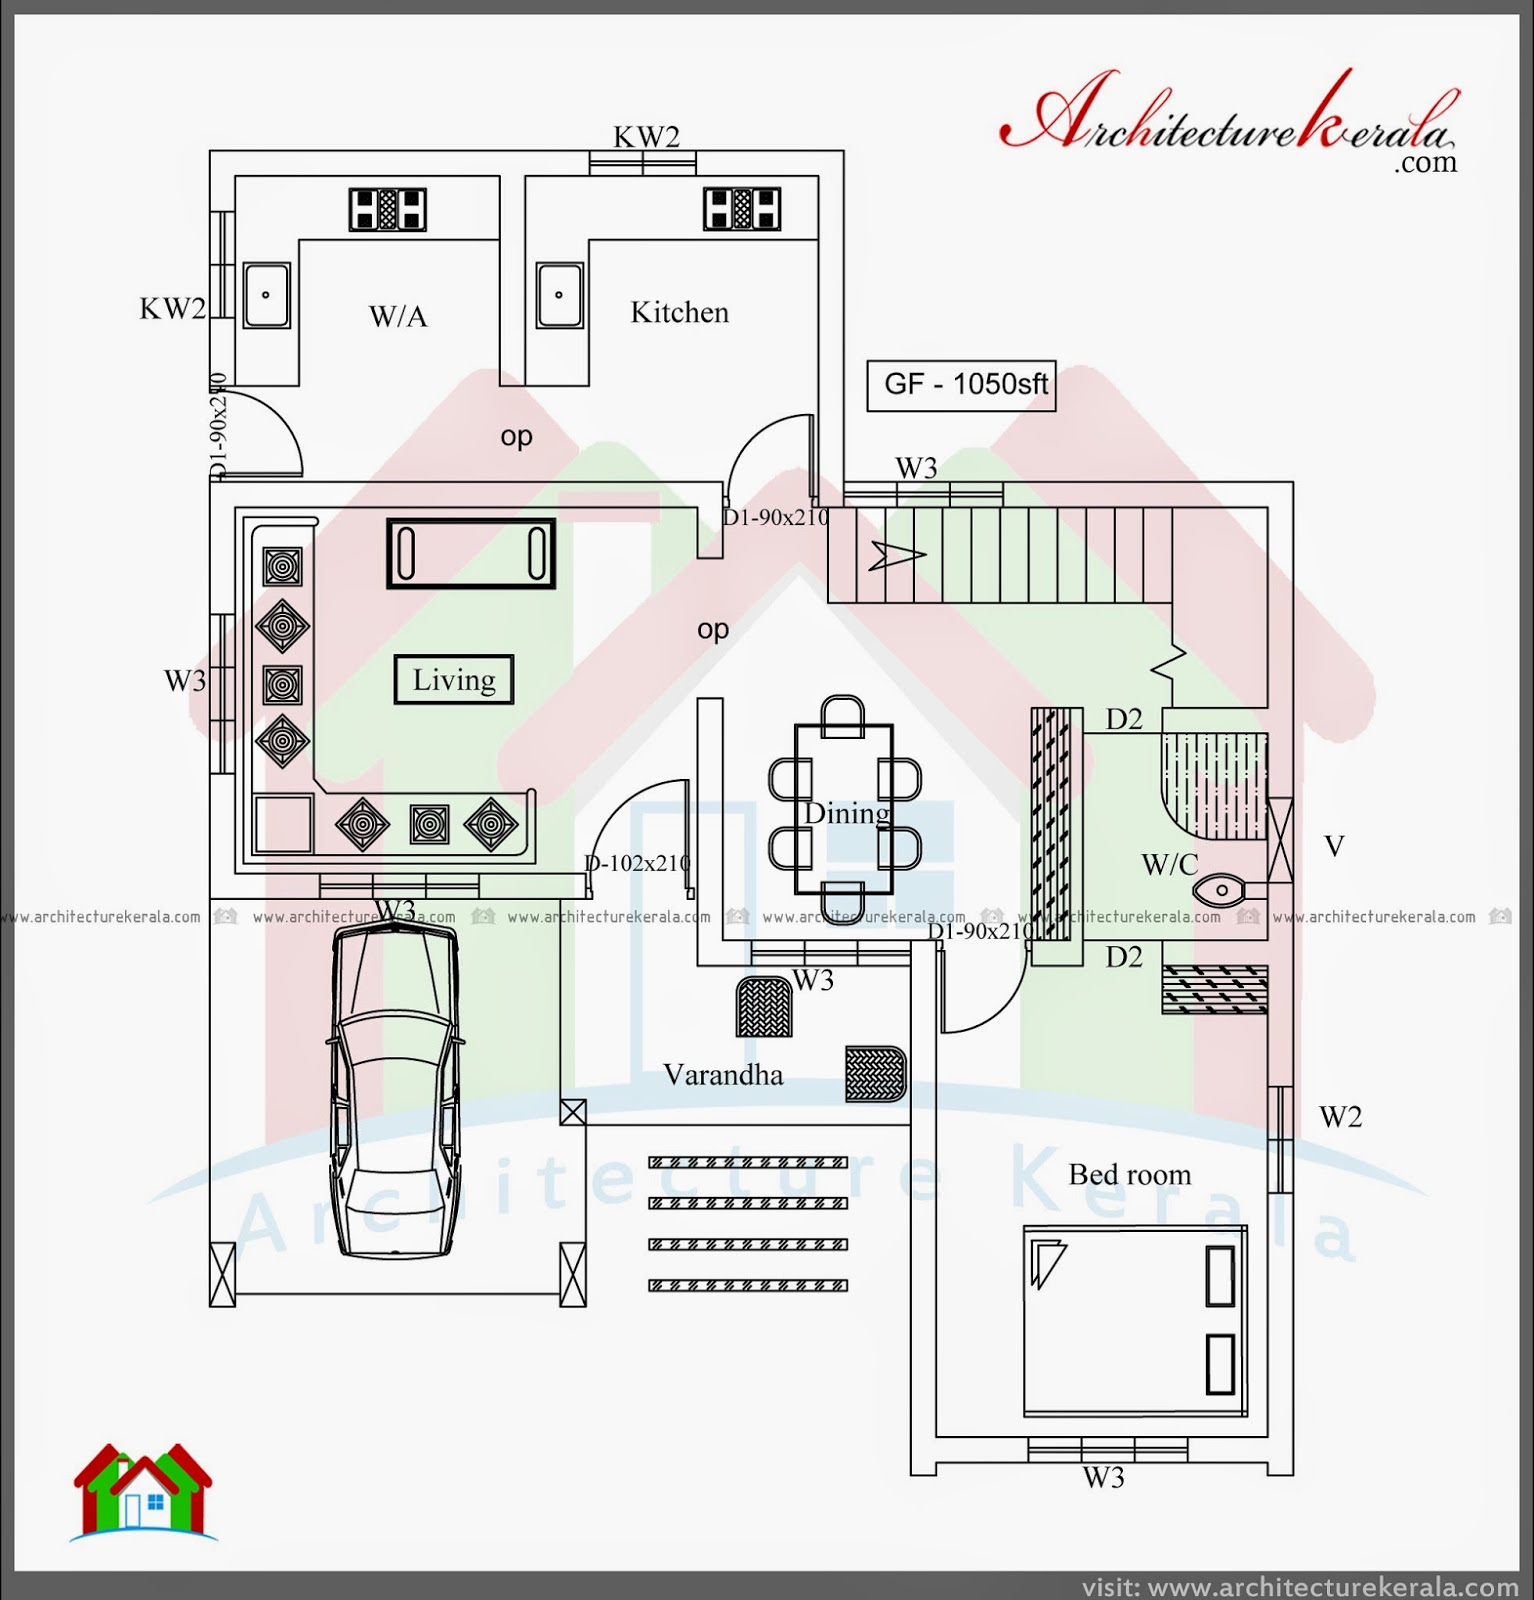 Three bedroom two storey house plan architecture kerala for Two storey house plans in kerala